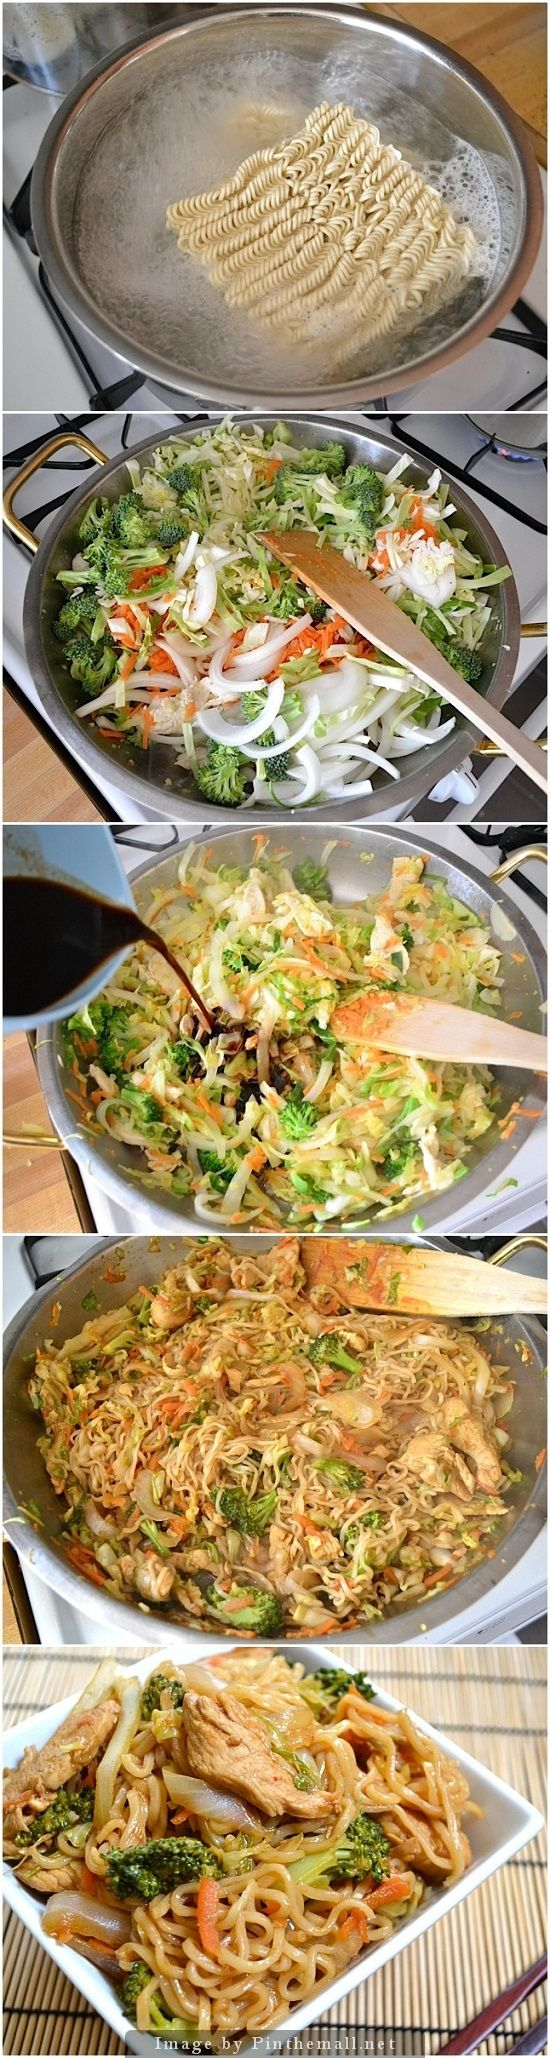 Simple Chicken Yakisoba  Ingredients  ½ head green cabbage  1 medium yellow onion  2 medium carrots  1 small crown broccoli  2 inches fresh ginger  1 large chicken breast  2 Tbsp vegetable oil  2 (3 oz.) packages ramen noodles  seasoning packets discarded  1 tsp sesame oil (optional)  ¼ cup soy sauce  ¼ cup worcestershire sauce  2 Tbsp ketchup  (up to) 1 Tbsp sriracha hot sauce  1 Tbsp sugar - created via http://pinthemall.net